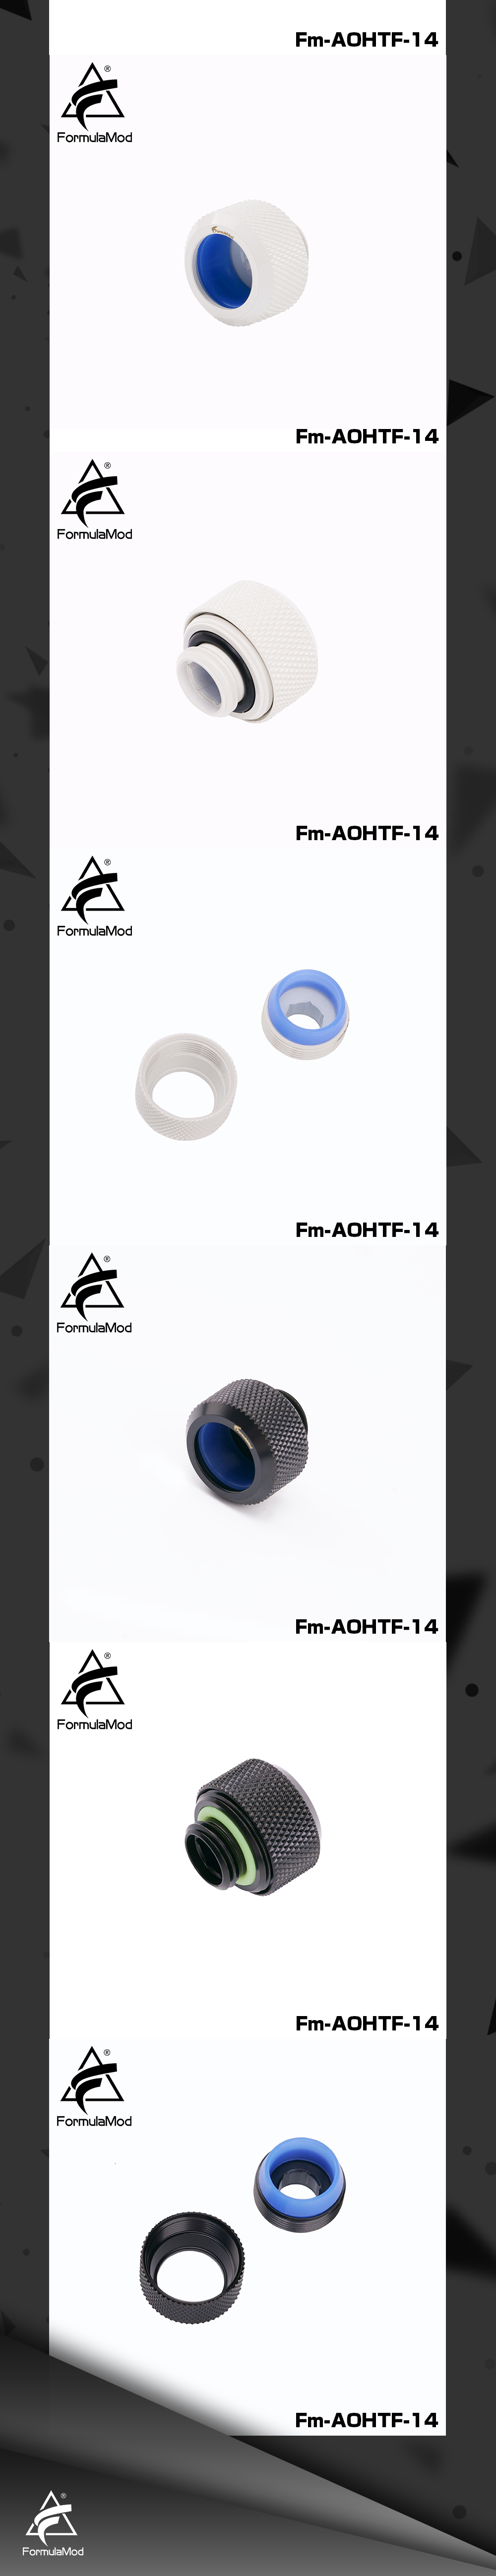 """Anti-Off Type Hard Tube Fitting Formulamod Non-Slip Silicone G1/4"""" For Od14mm Computer Case Water Cooling Copper component"""